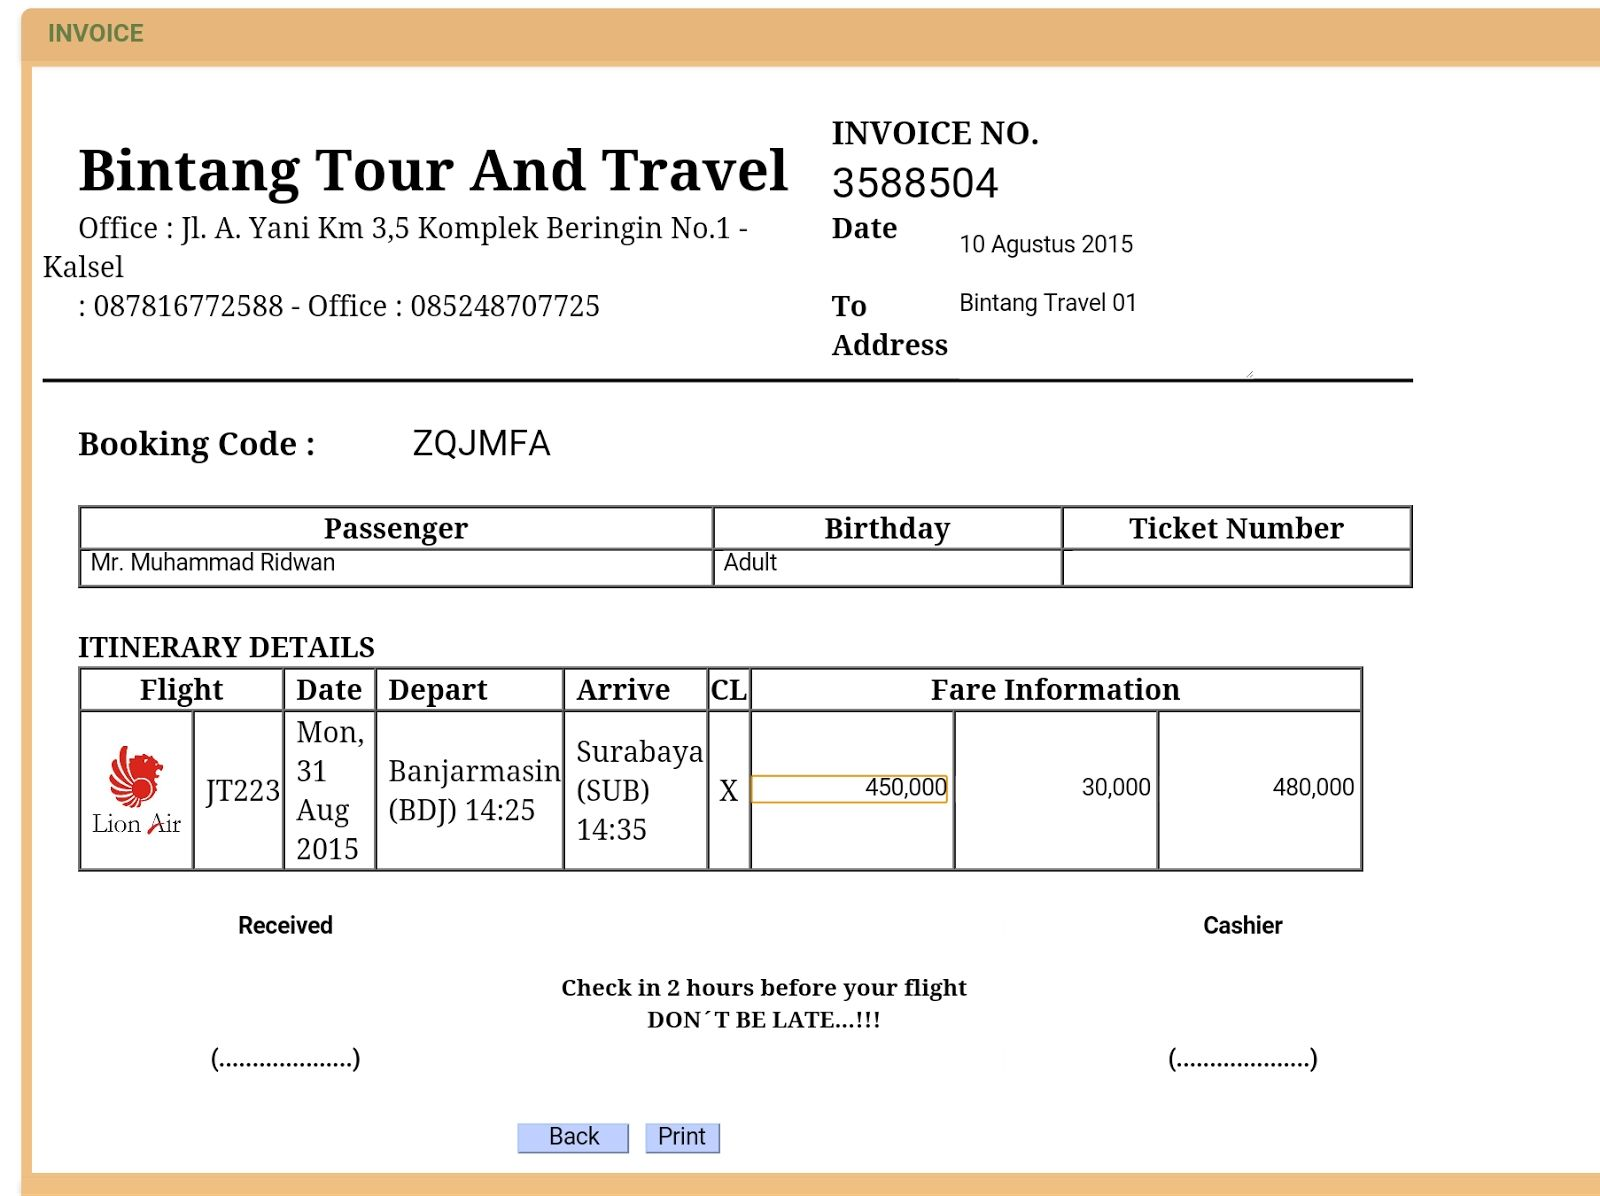 Receipt Of Tour And Travels Https Simpleinvoice17 Net Receipt Of Tour And Travels In 2021 Create A Company Invoice Template Word Microsoft Word Invoice Template